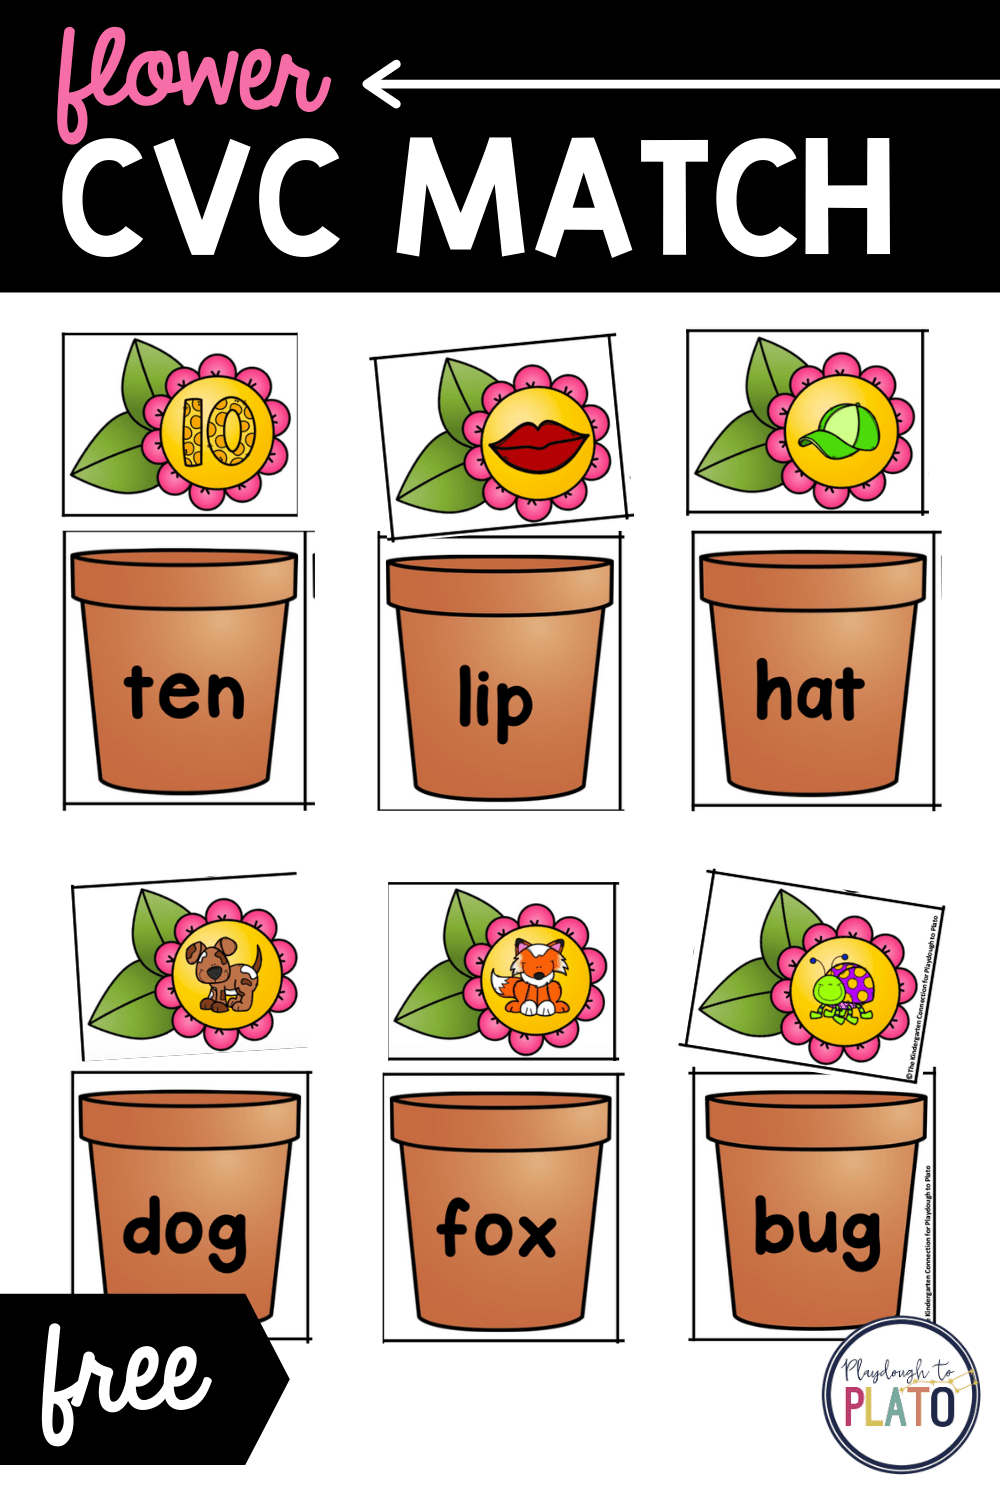 Flower CVC Match Word Game